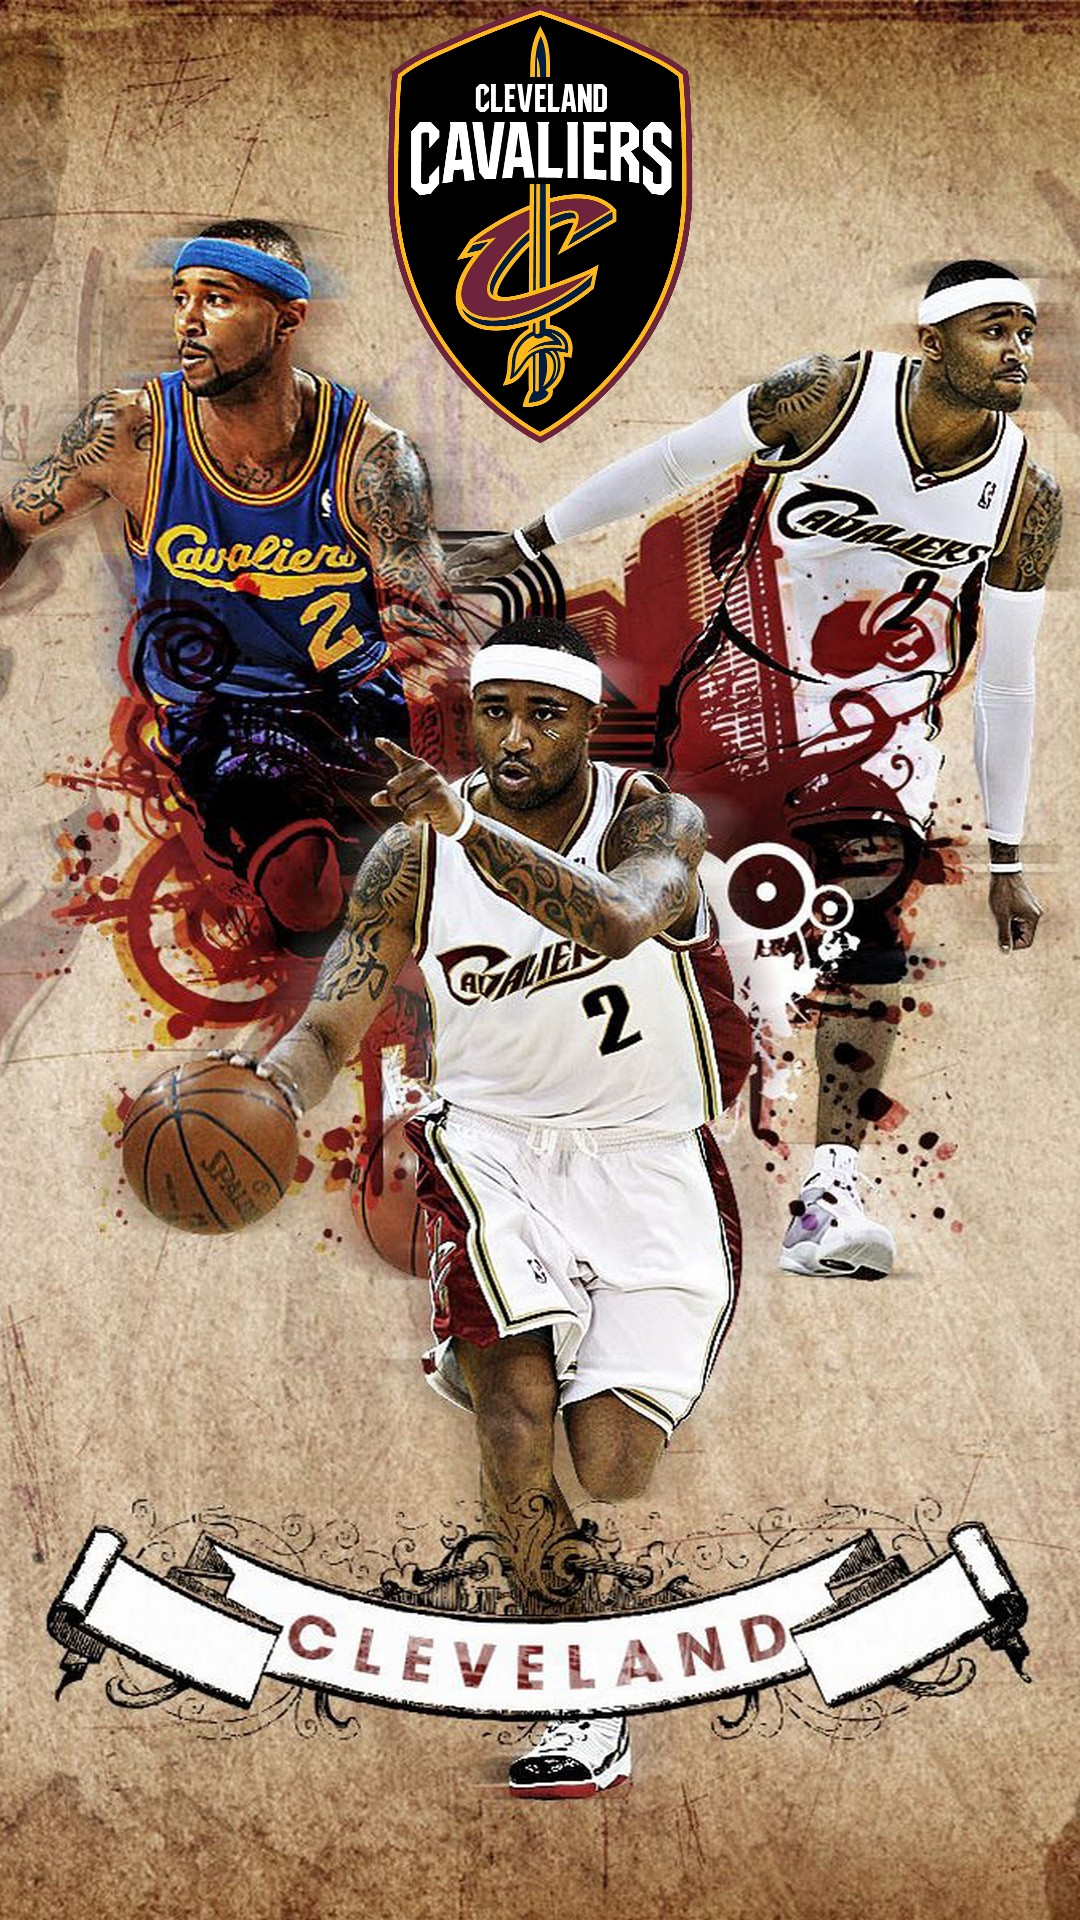 Cleveland Cavaliers NBA Wallpaper For Mobile 2020 Basketball 1080x1920